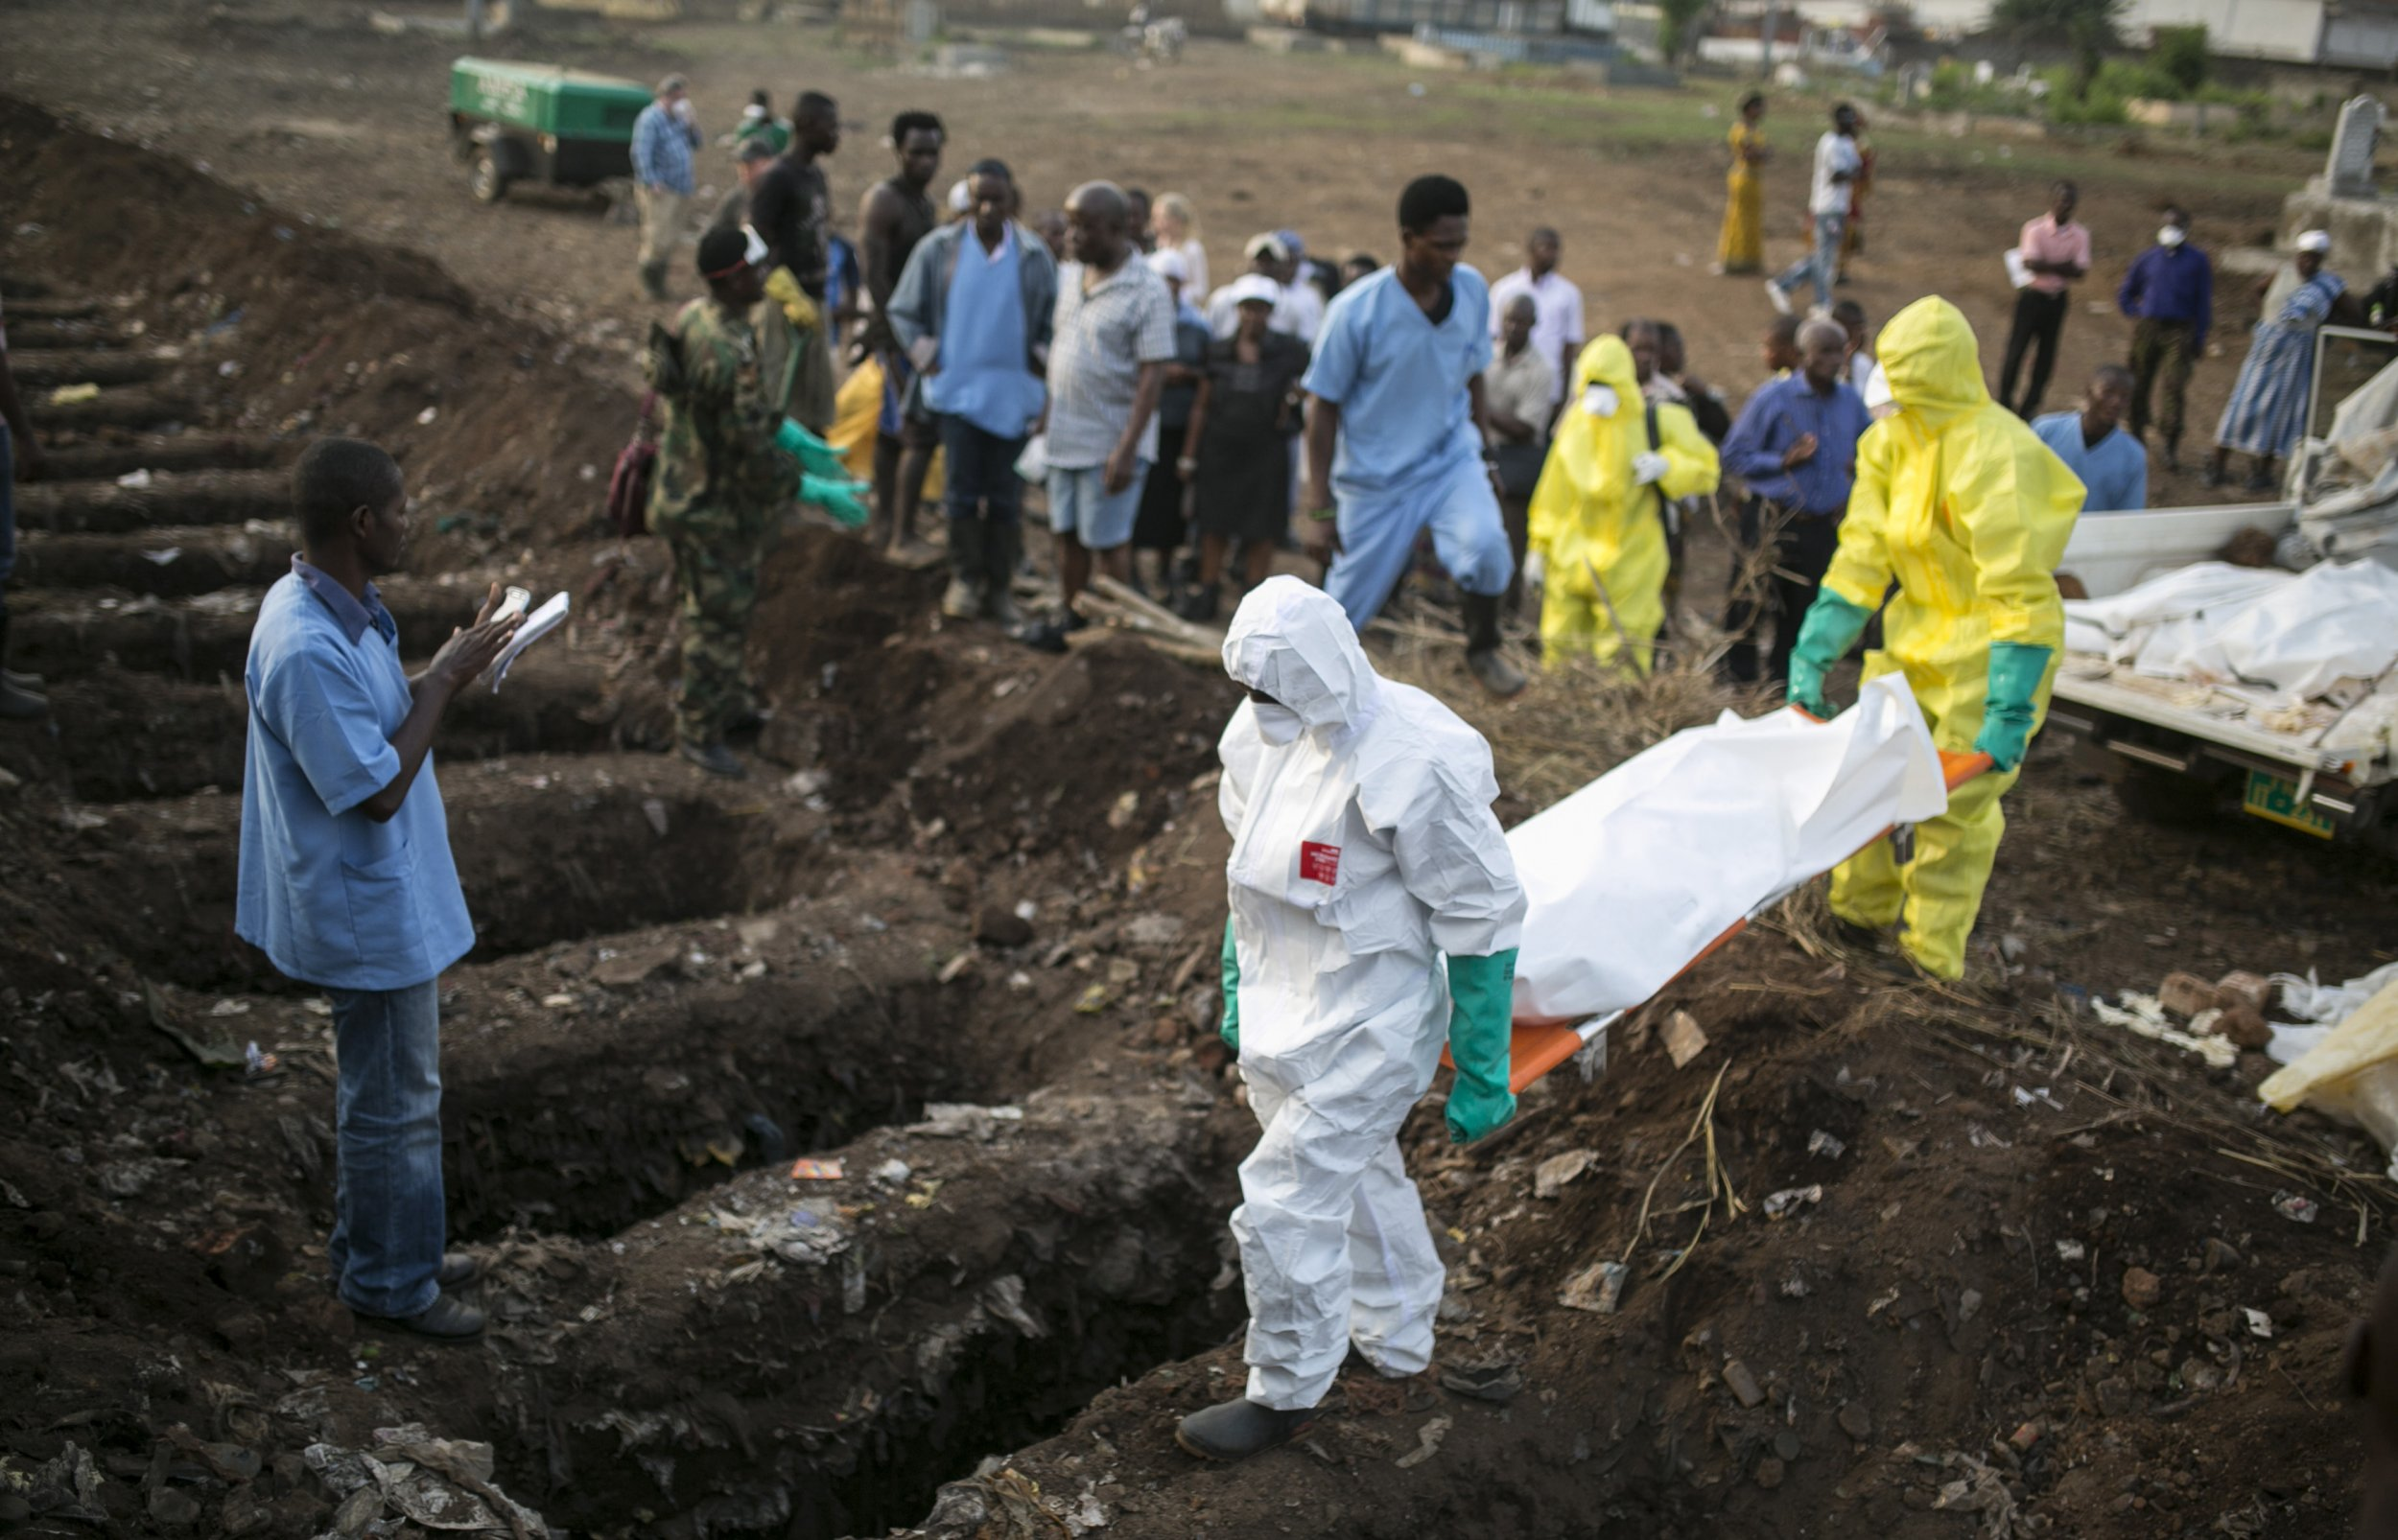 Ebola experts from CDC were pulled from outbreak zone amid security concern